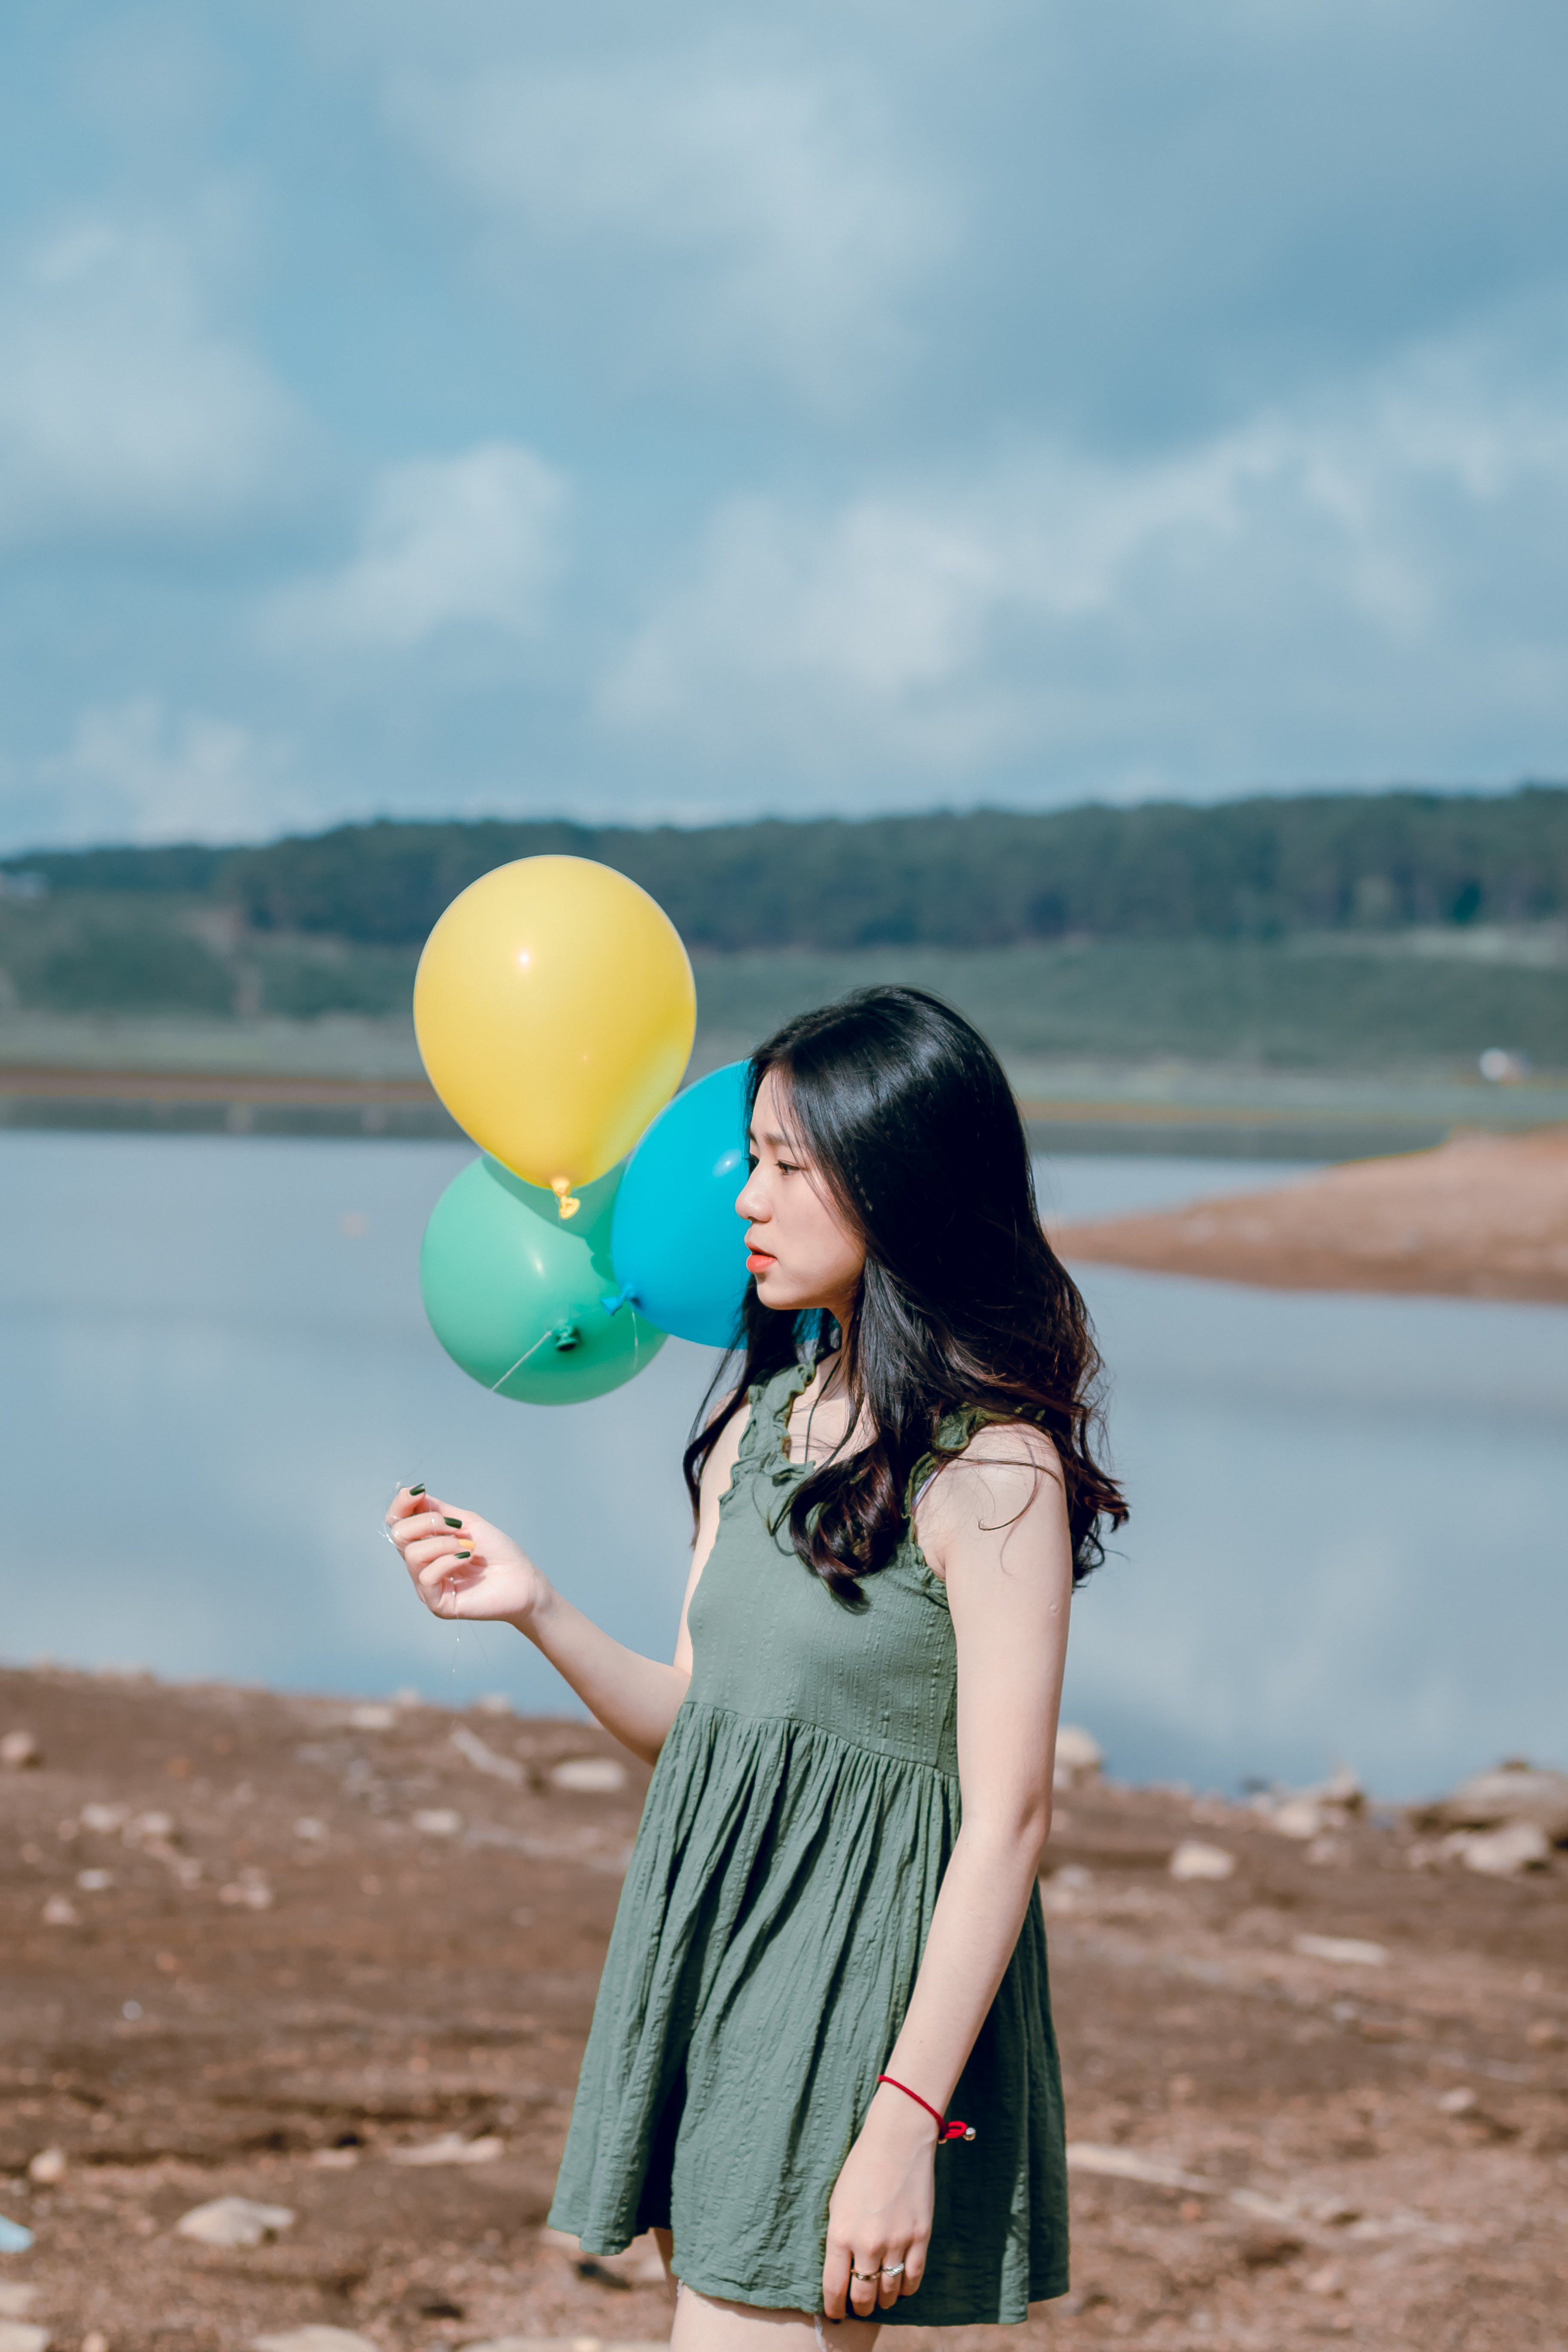 Woman in Green Sleeveless Dress Holding Yellow, Green, and Blue Balloons